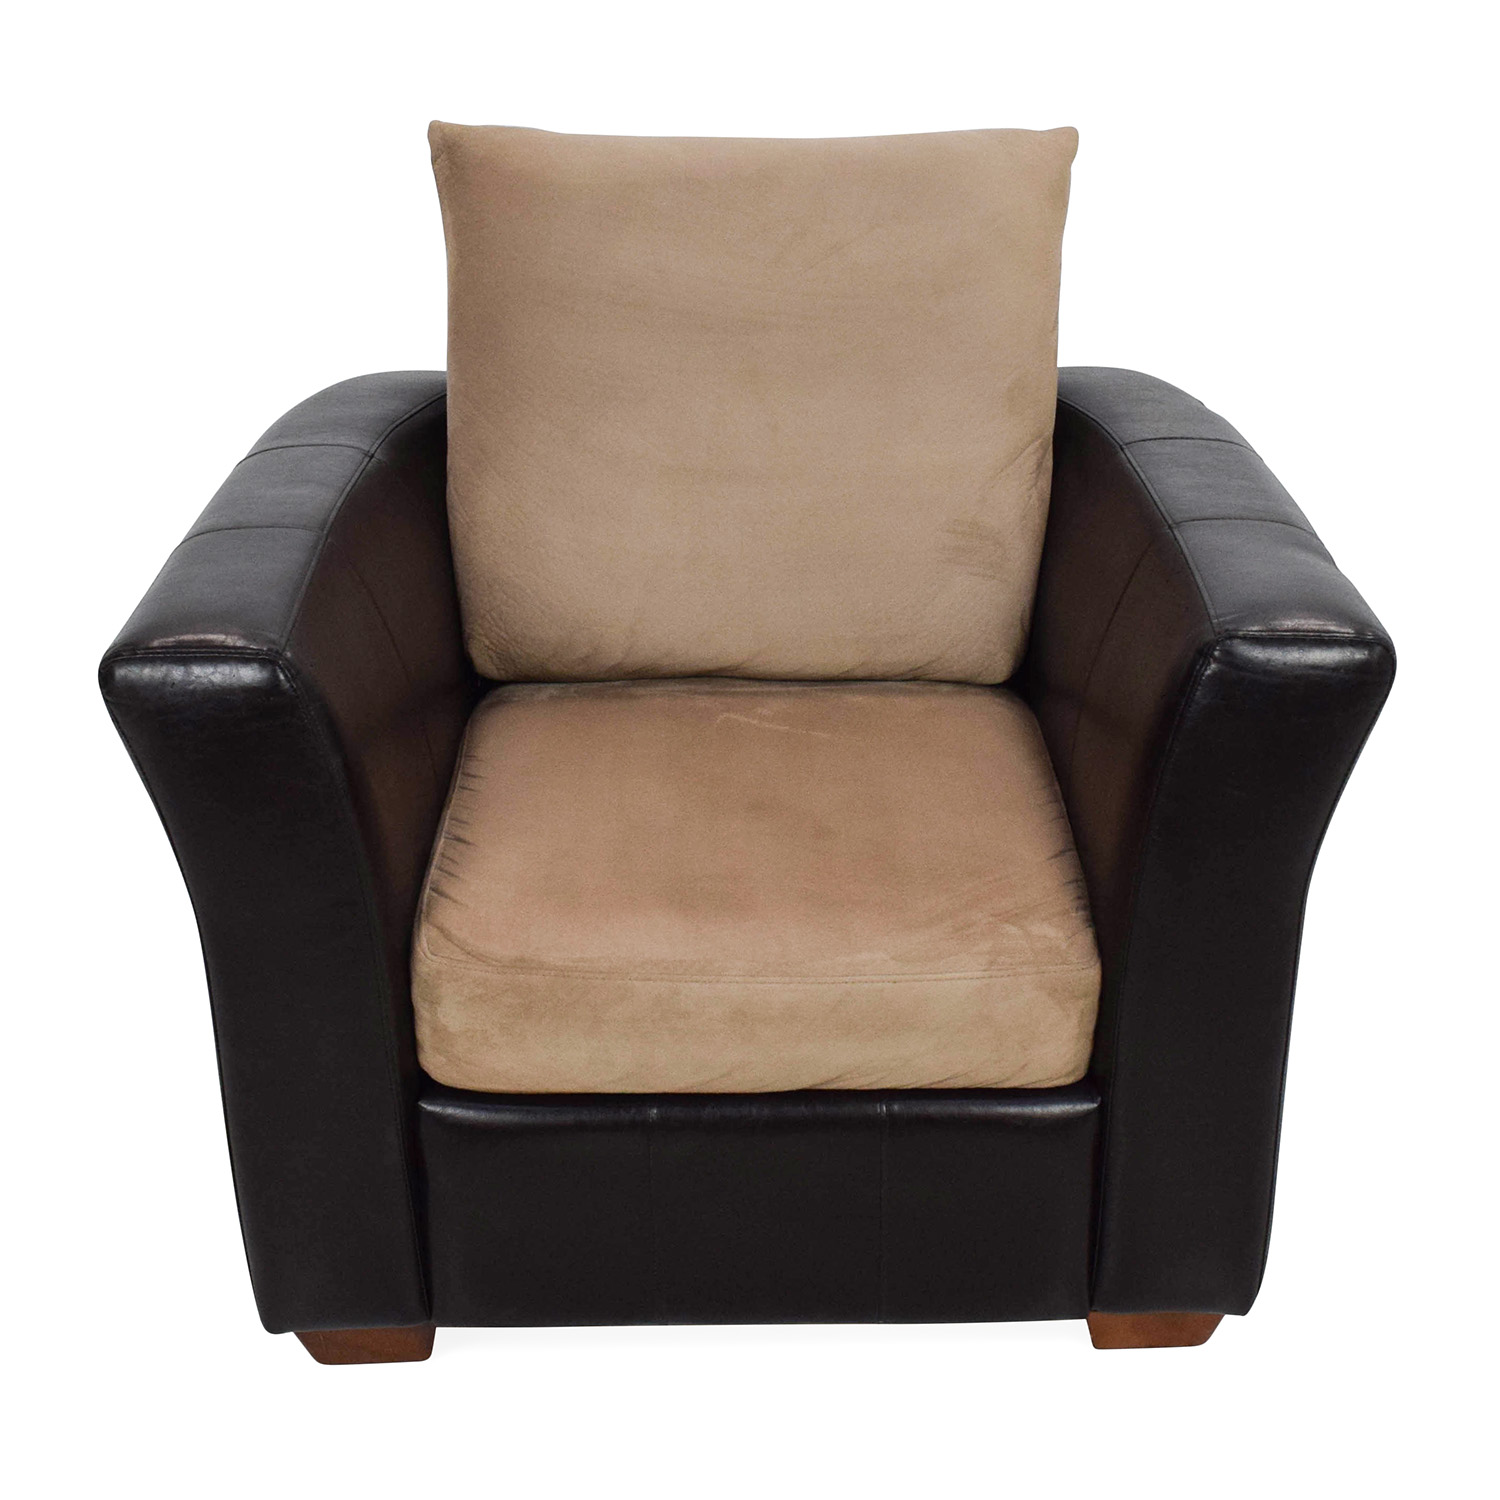 Jennifer Convertibles Jennifer Convertibles Leather Chair coupon